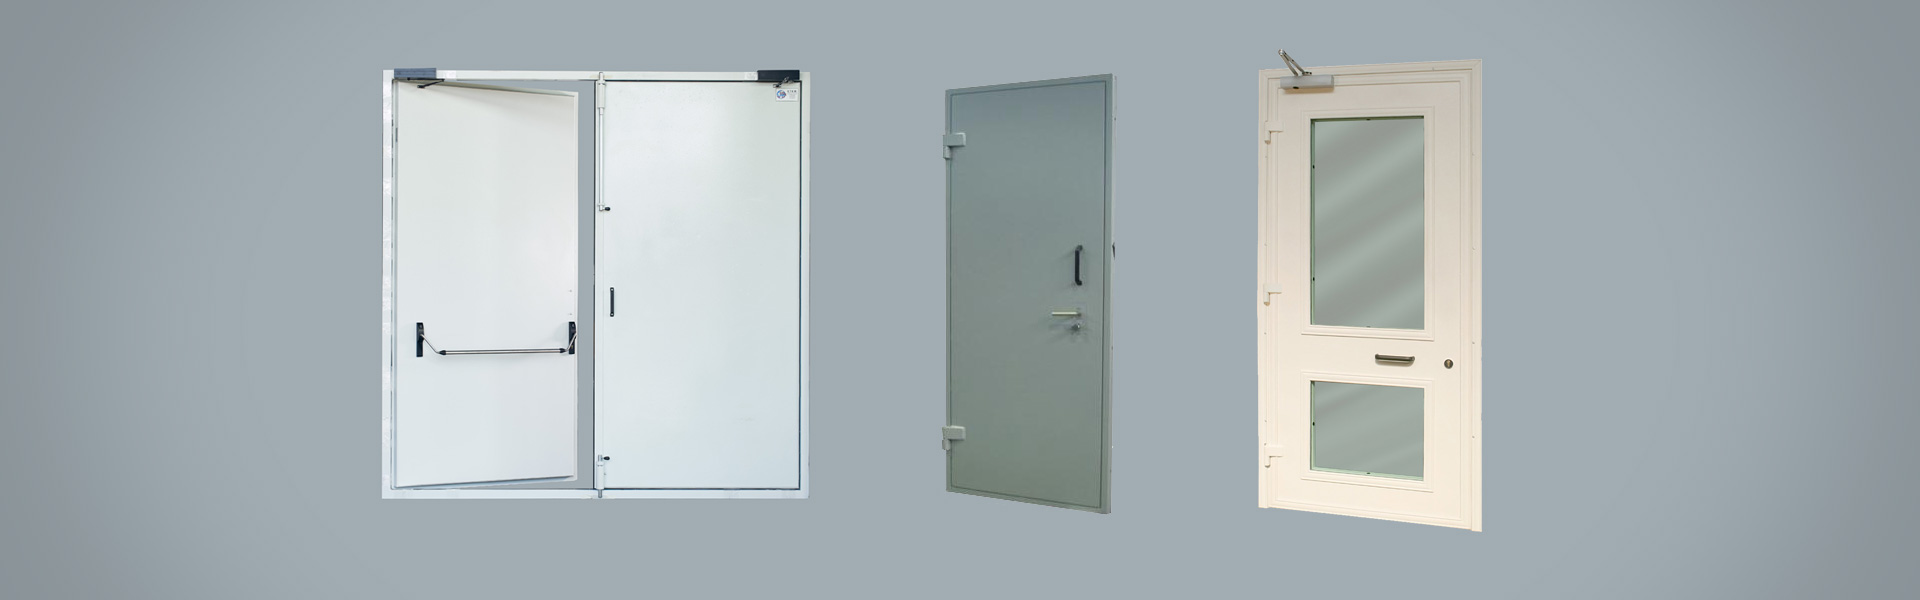 Blast Doors: security certified high-quality materials doors